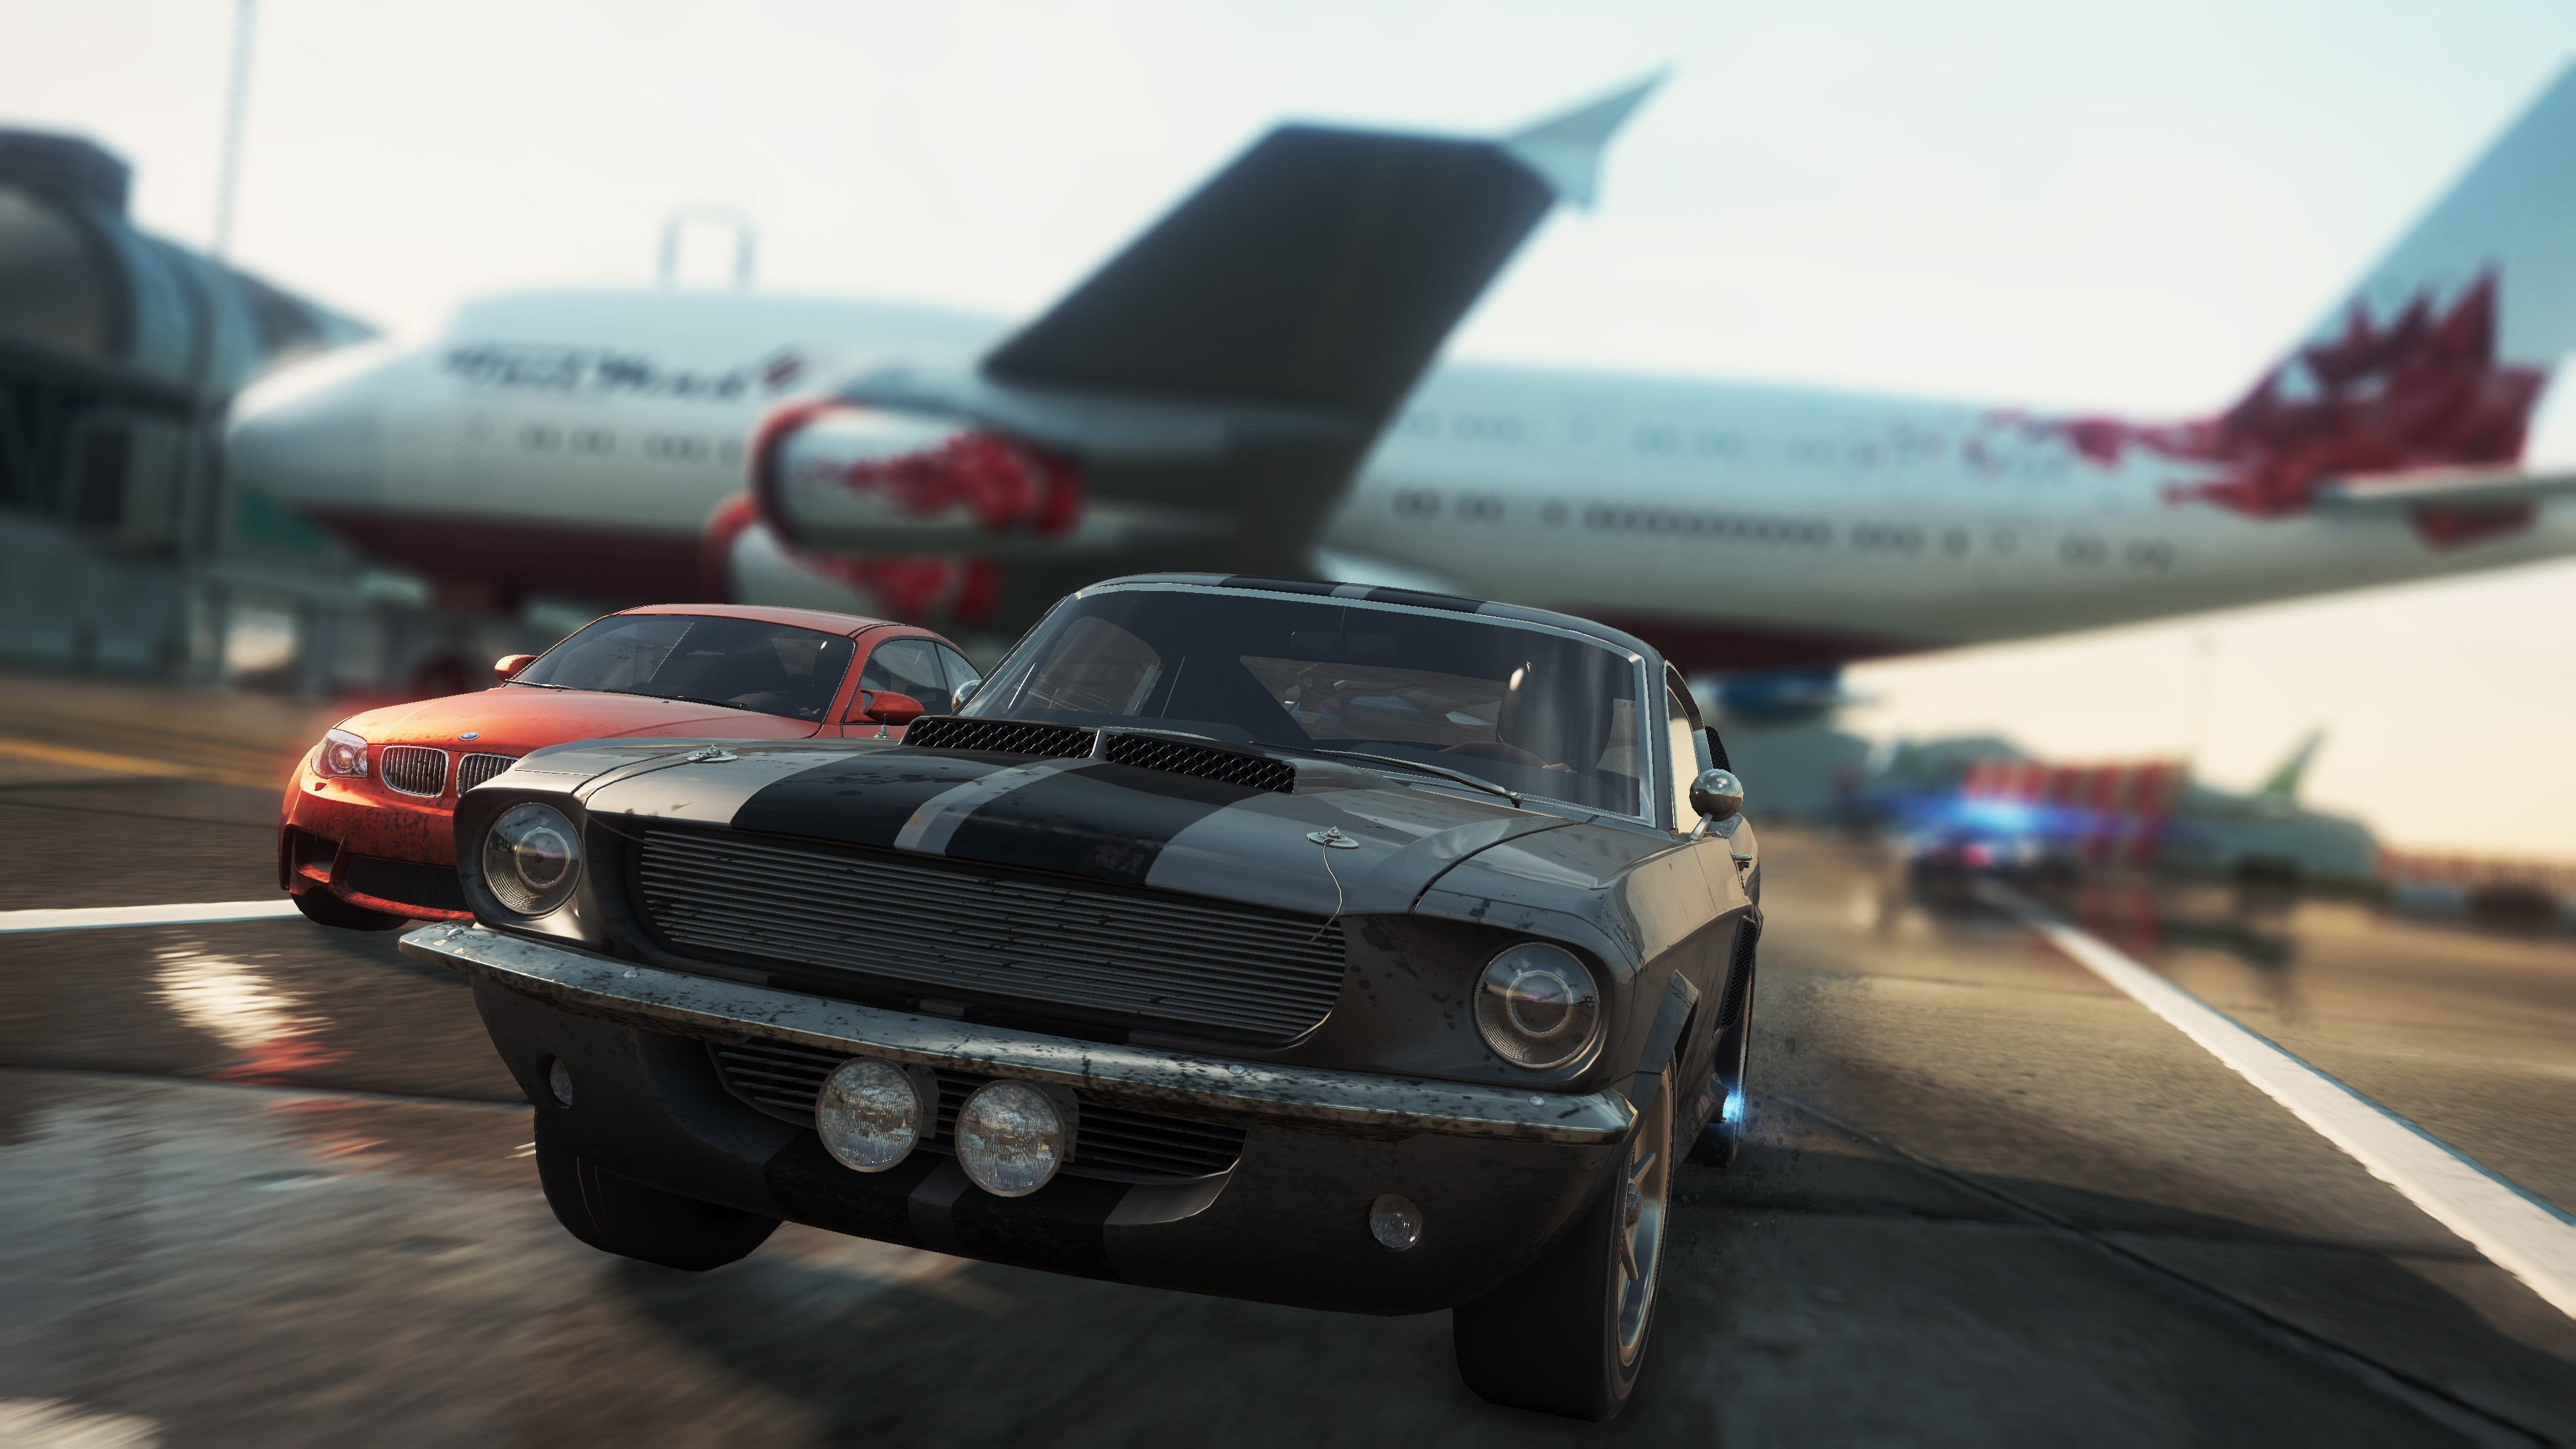 Need For Speed Most Wanted 2012 4k Ultra Hd Wallpaper High Quality Walls